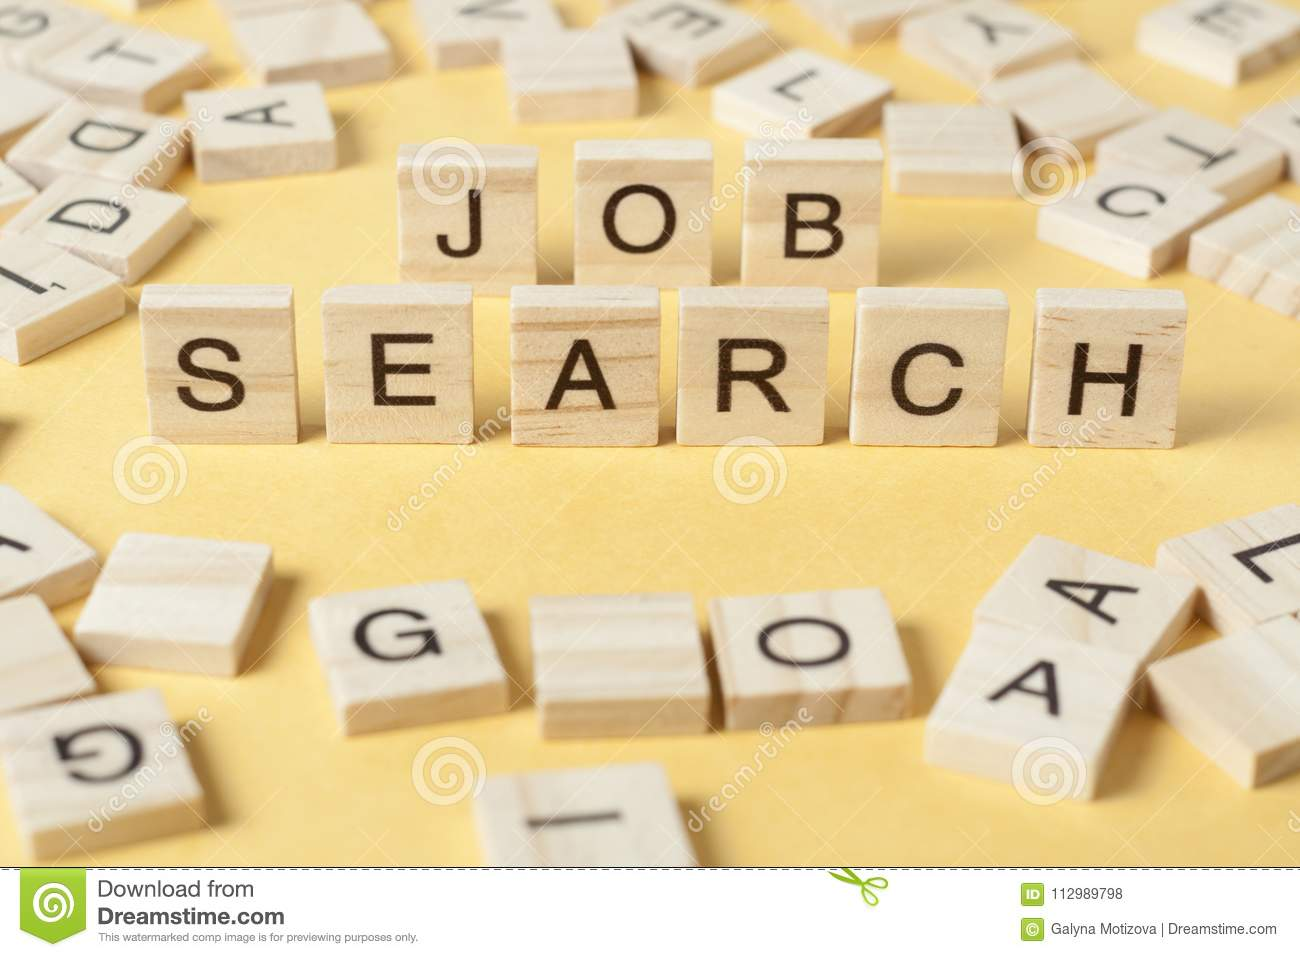 Text JOB SEARCH on wooden cubes at yellow background.